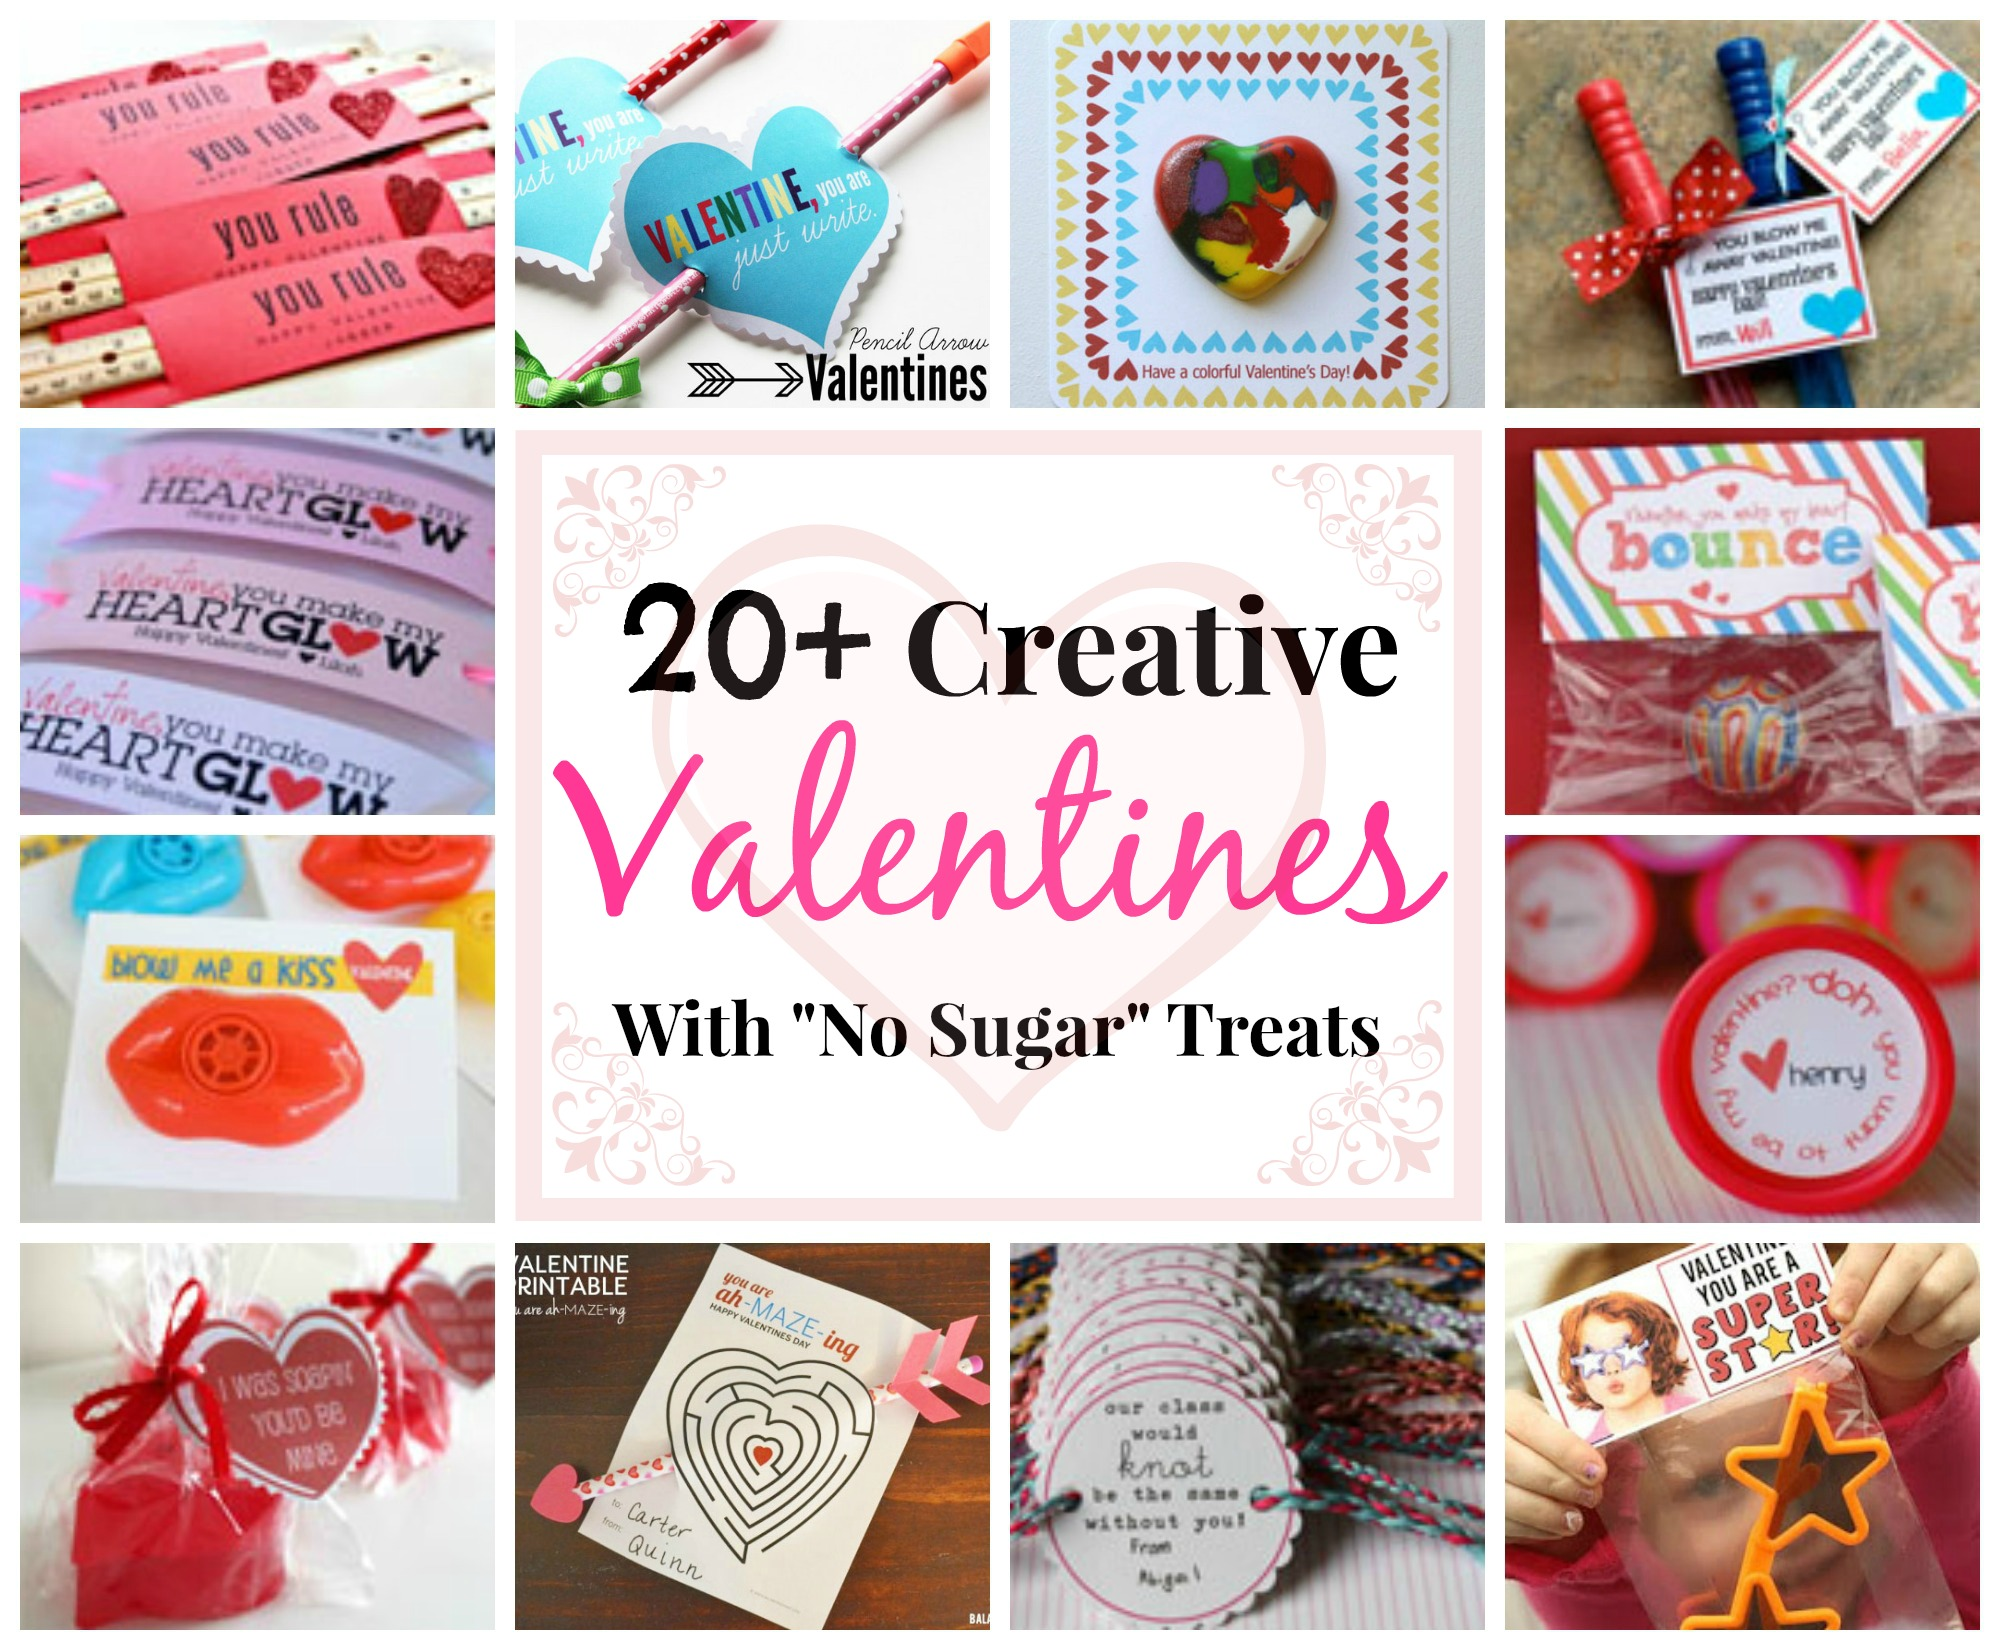 valentines day diy valentines with no sugar treats celebrating holidays - Homemade Valentine Treats